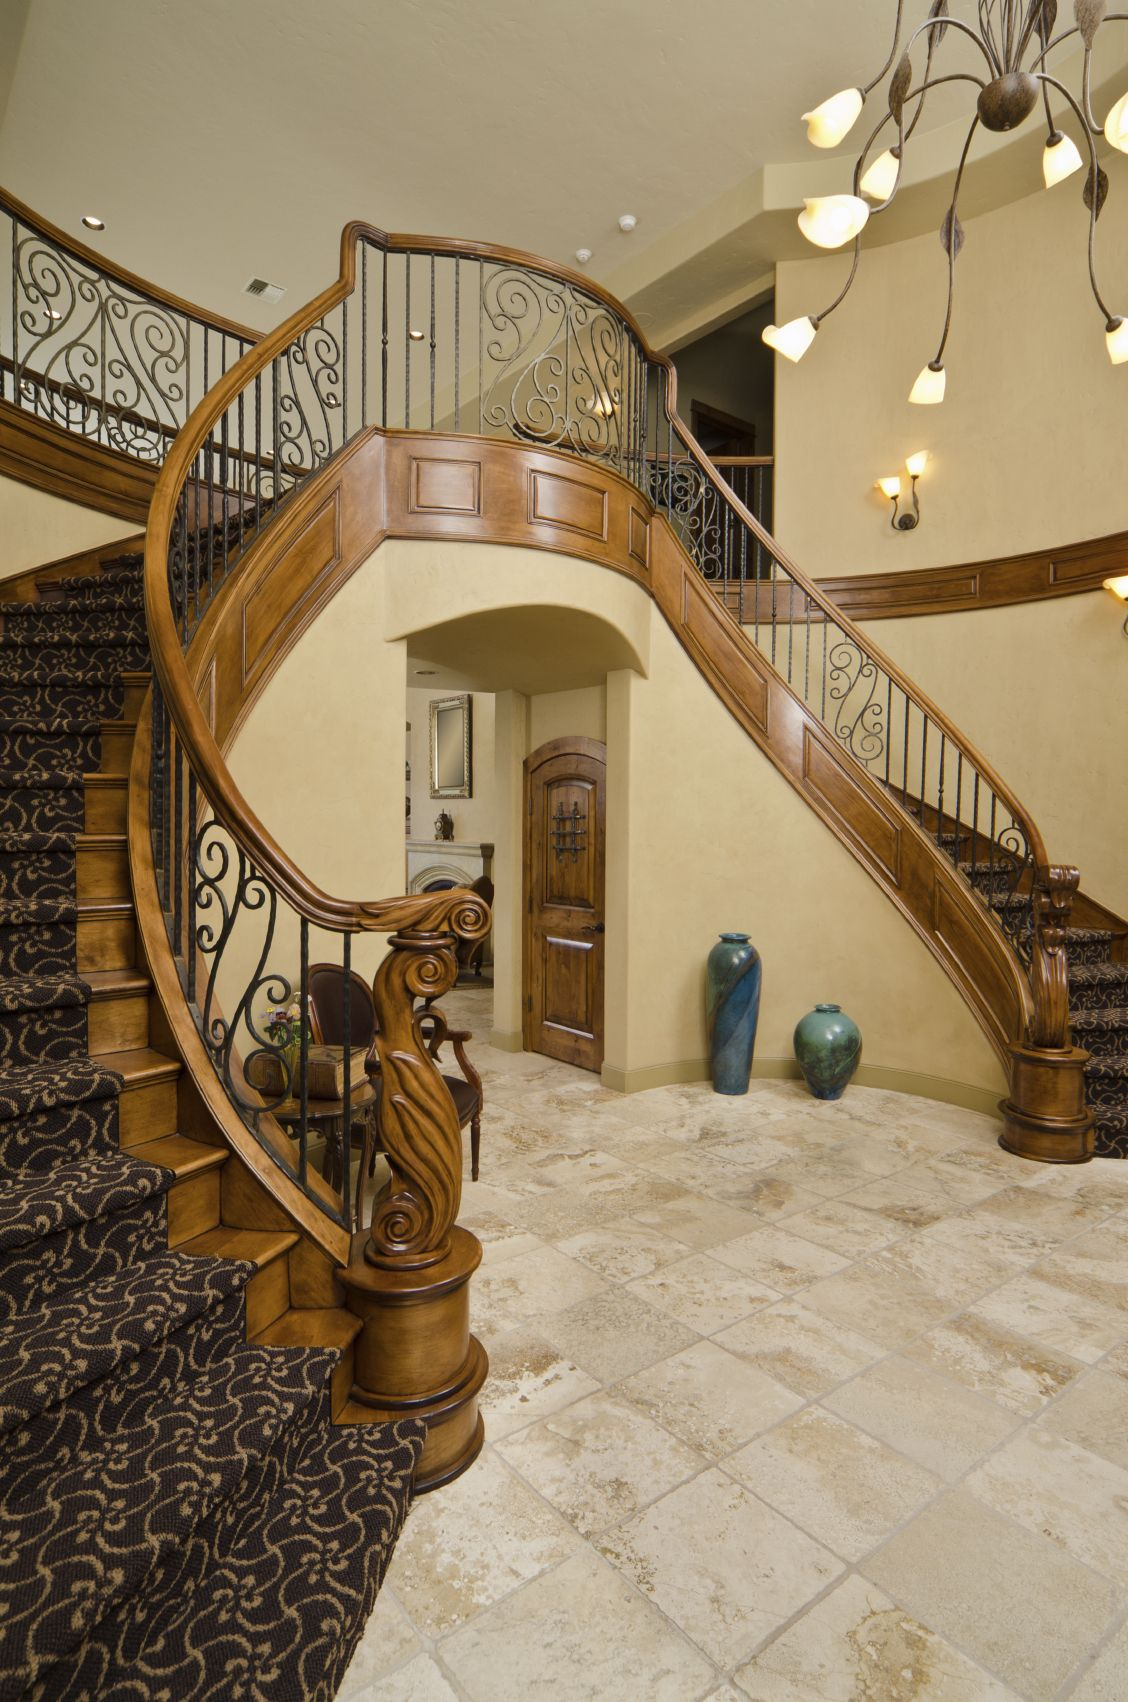 Entrance Foyer Circulation And Balcony In A House : Foyer design ideas for all colors styles and